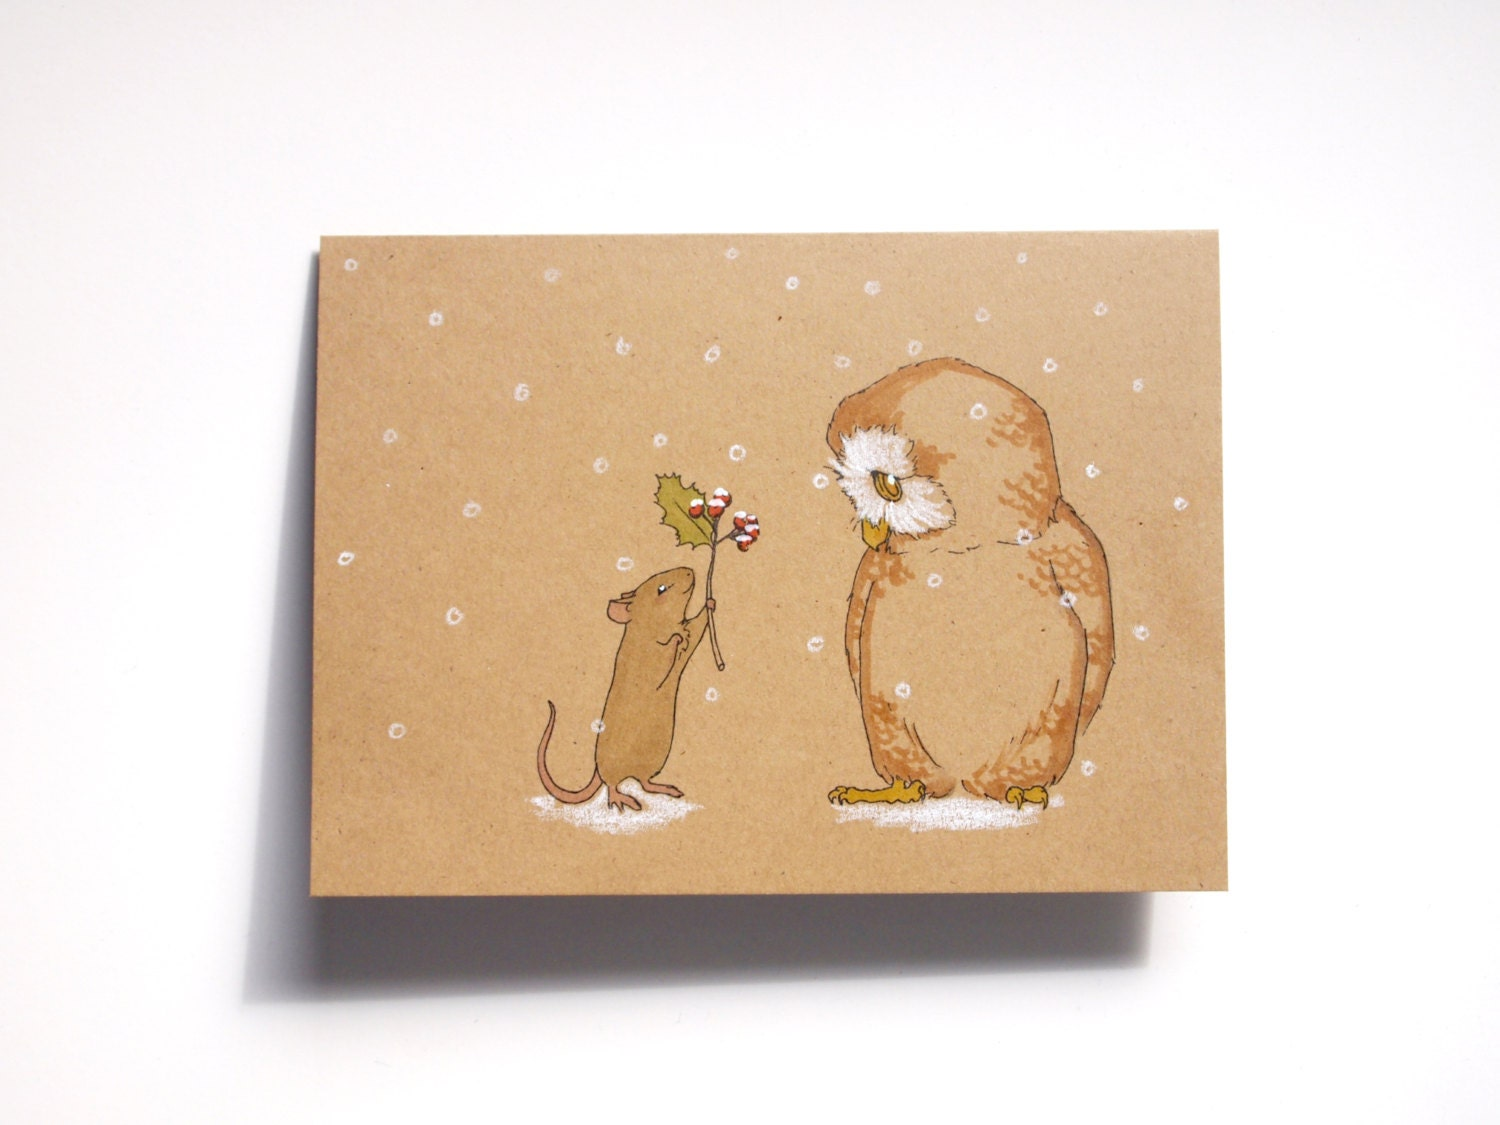 Hand Painted Rustic Christmas Card Set on Recycled Paper - ABunnyandBear